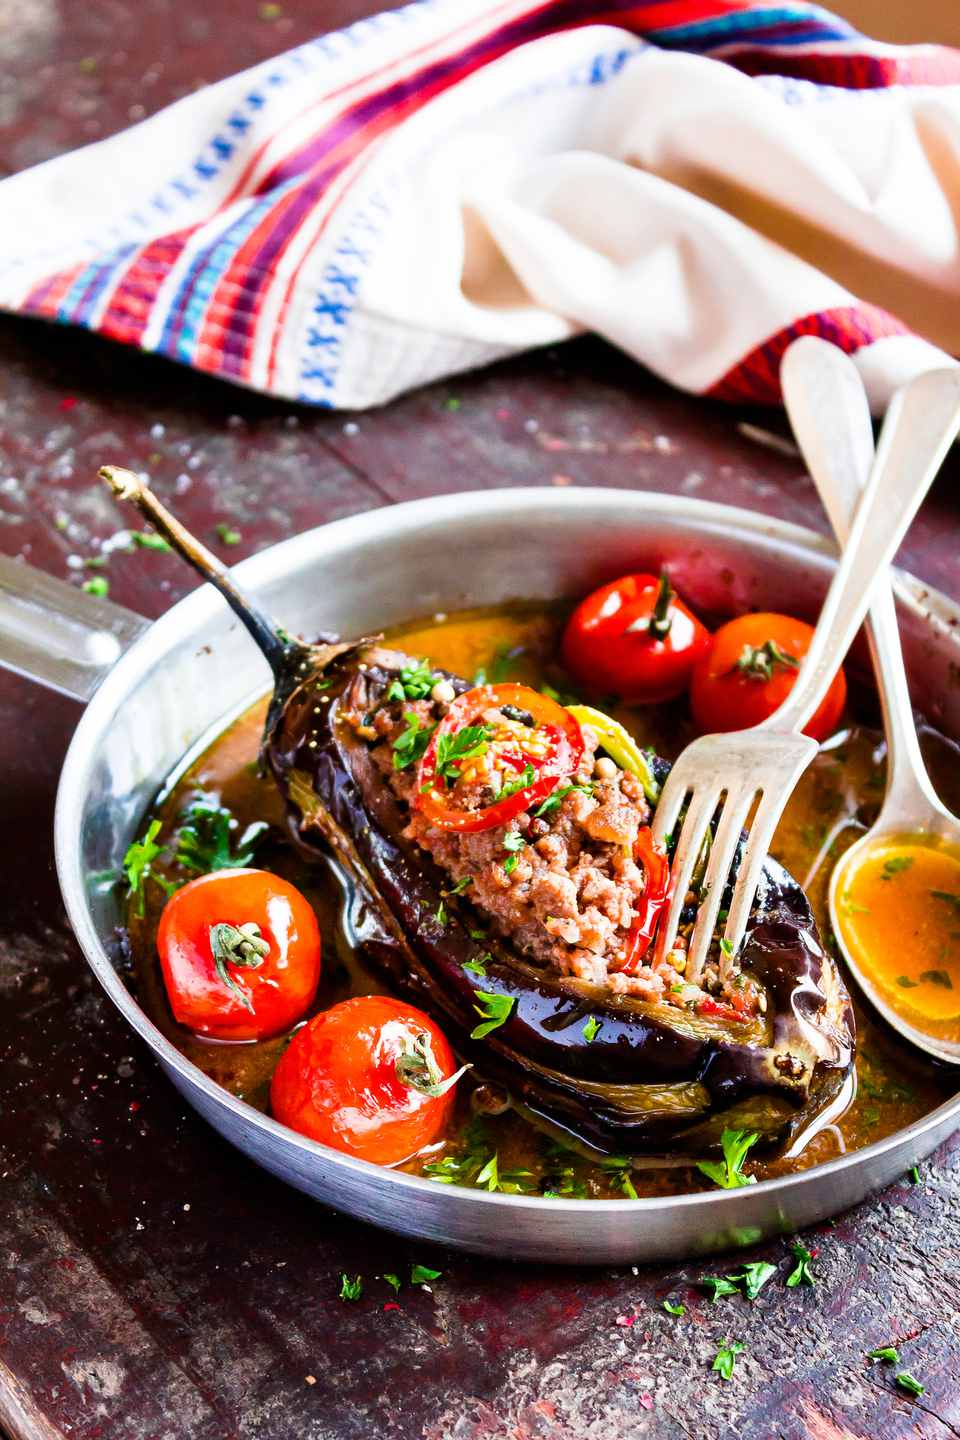 Baked aubergine or eggplant stuffed with minced pork and beef, carrot, pepper, cherry tomatoes in a pan on a wooden table